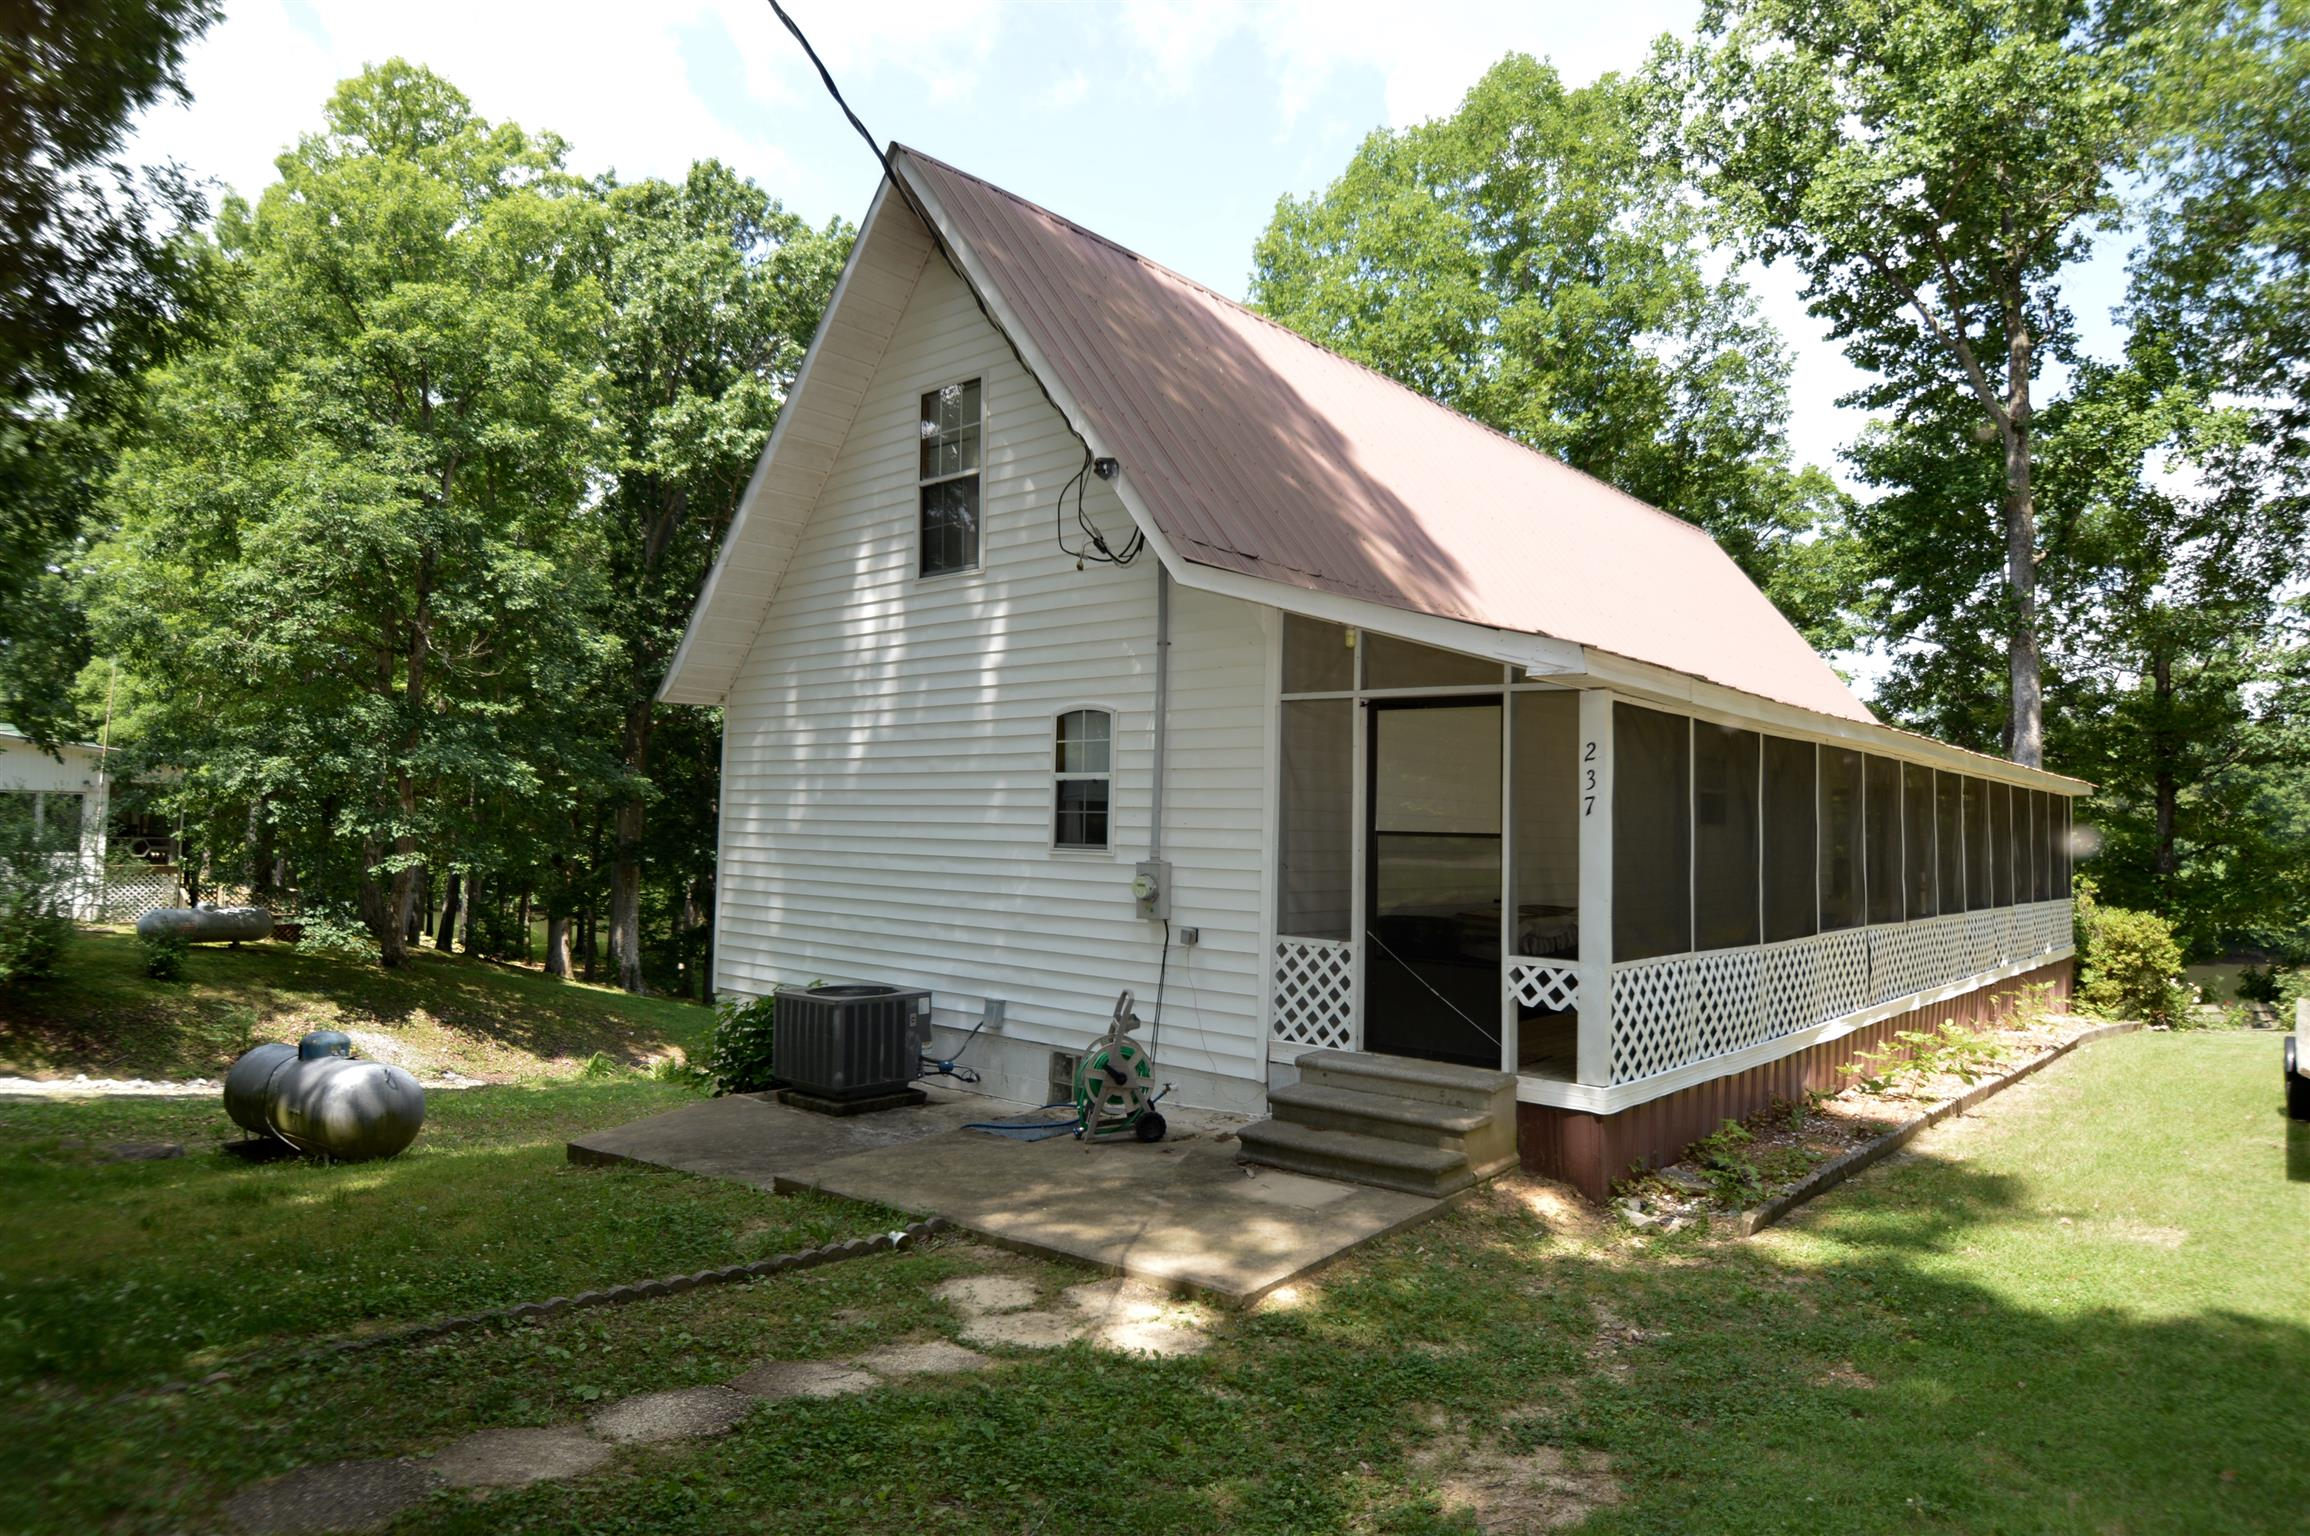 237 Camp Nix Rd, Lobelville, TN 37097 - Lobelville, TN real estate listing